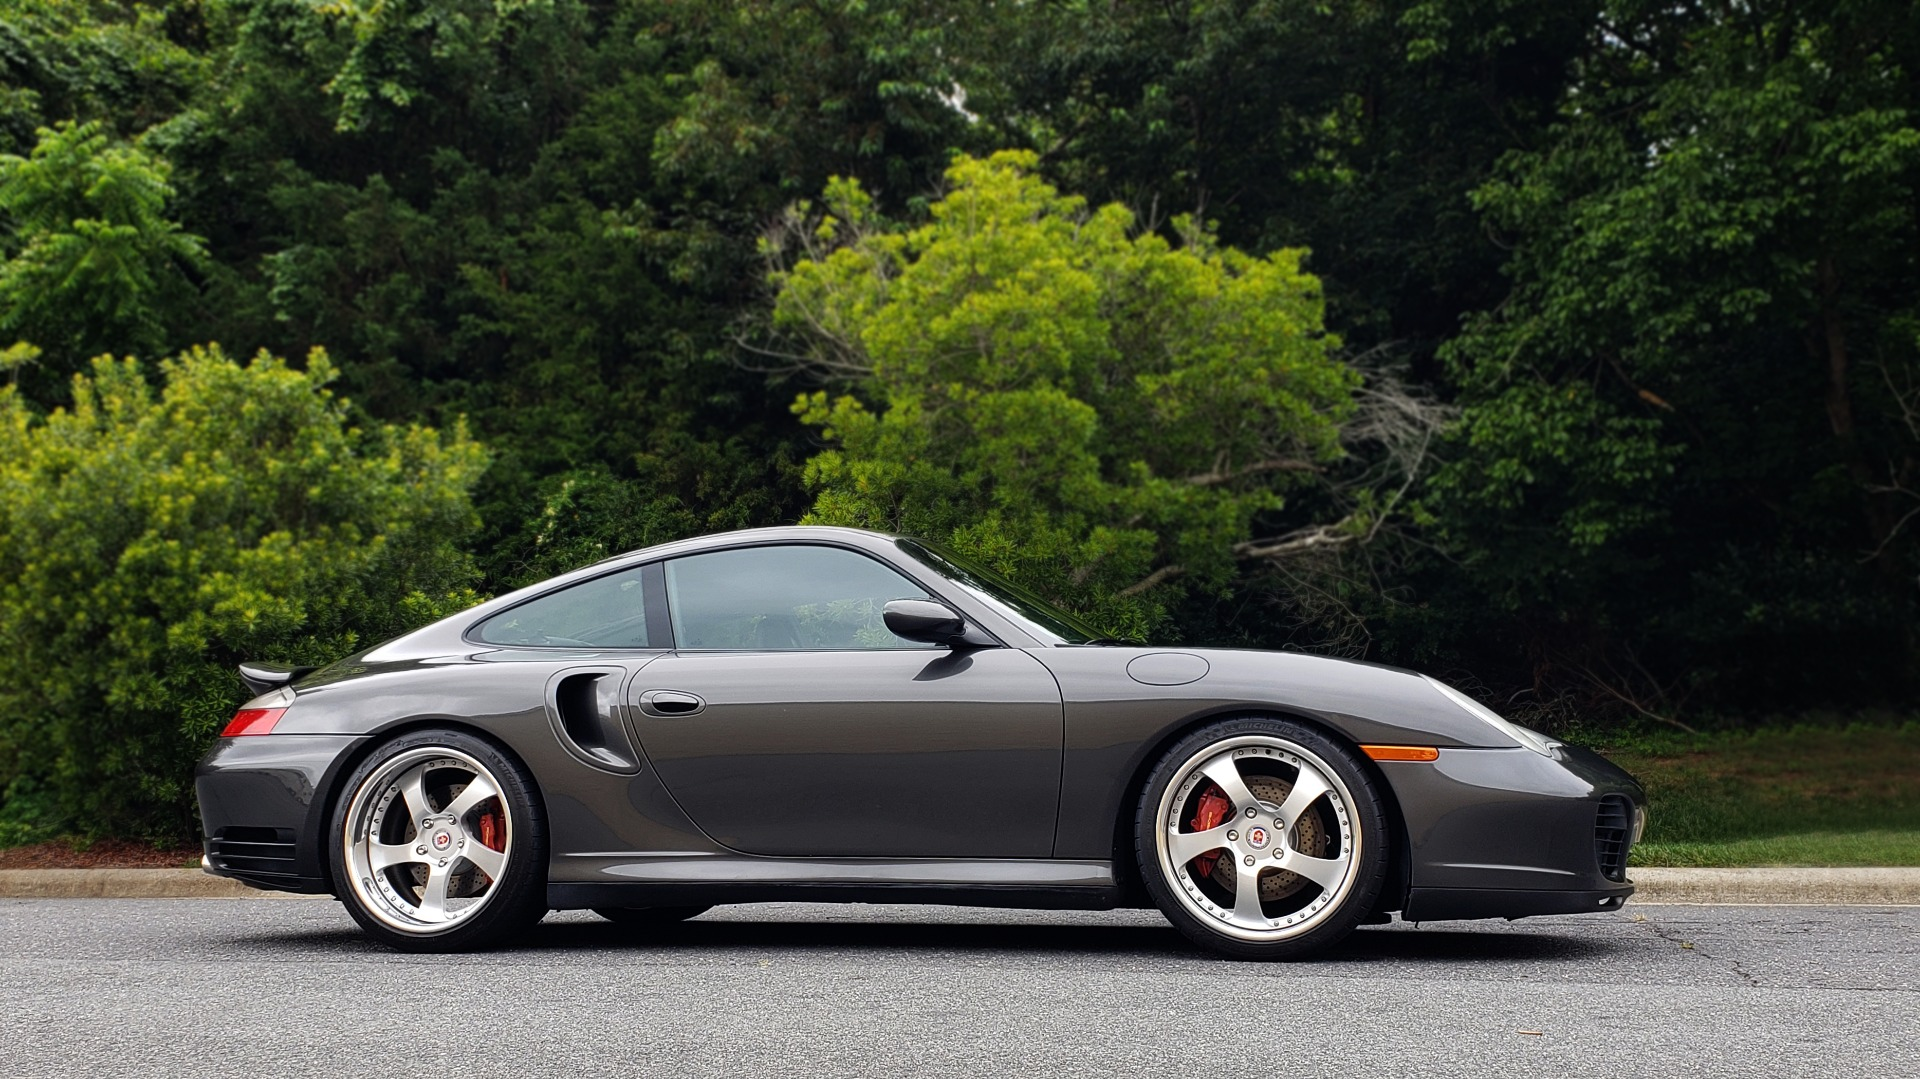 Used 2002 Porsche 911 CARRERA TURBO / 6-SPD MAN / ALPINE / BOSE / PERF UPGRADES for sale $53,995 at Formula Imports in Charlotte NC 28227 7